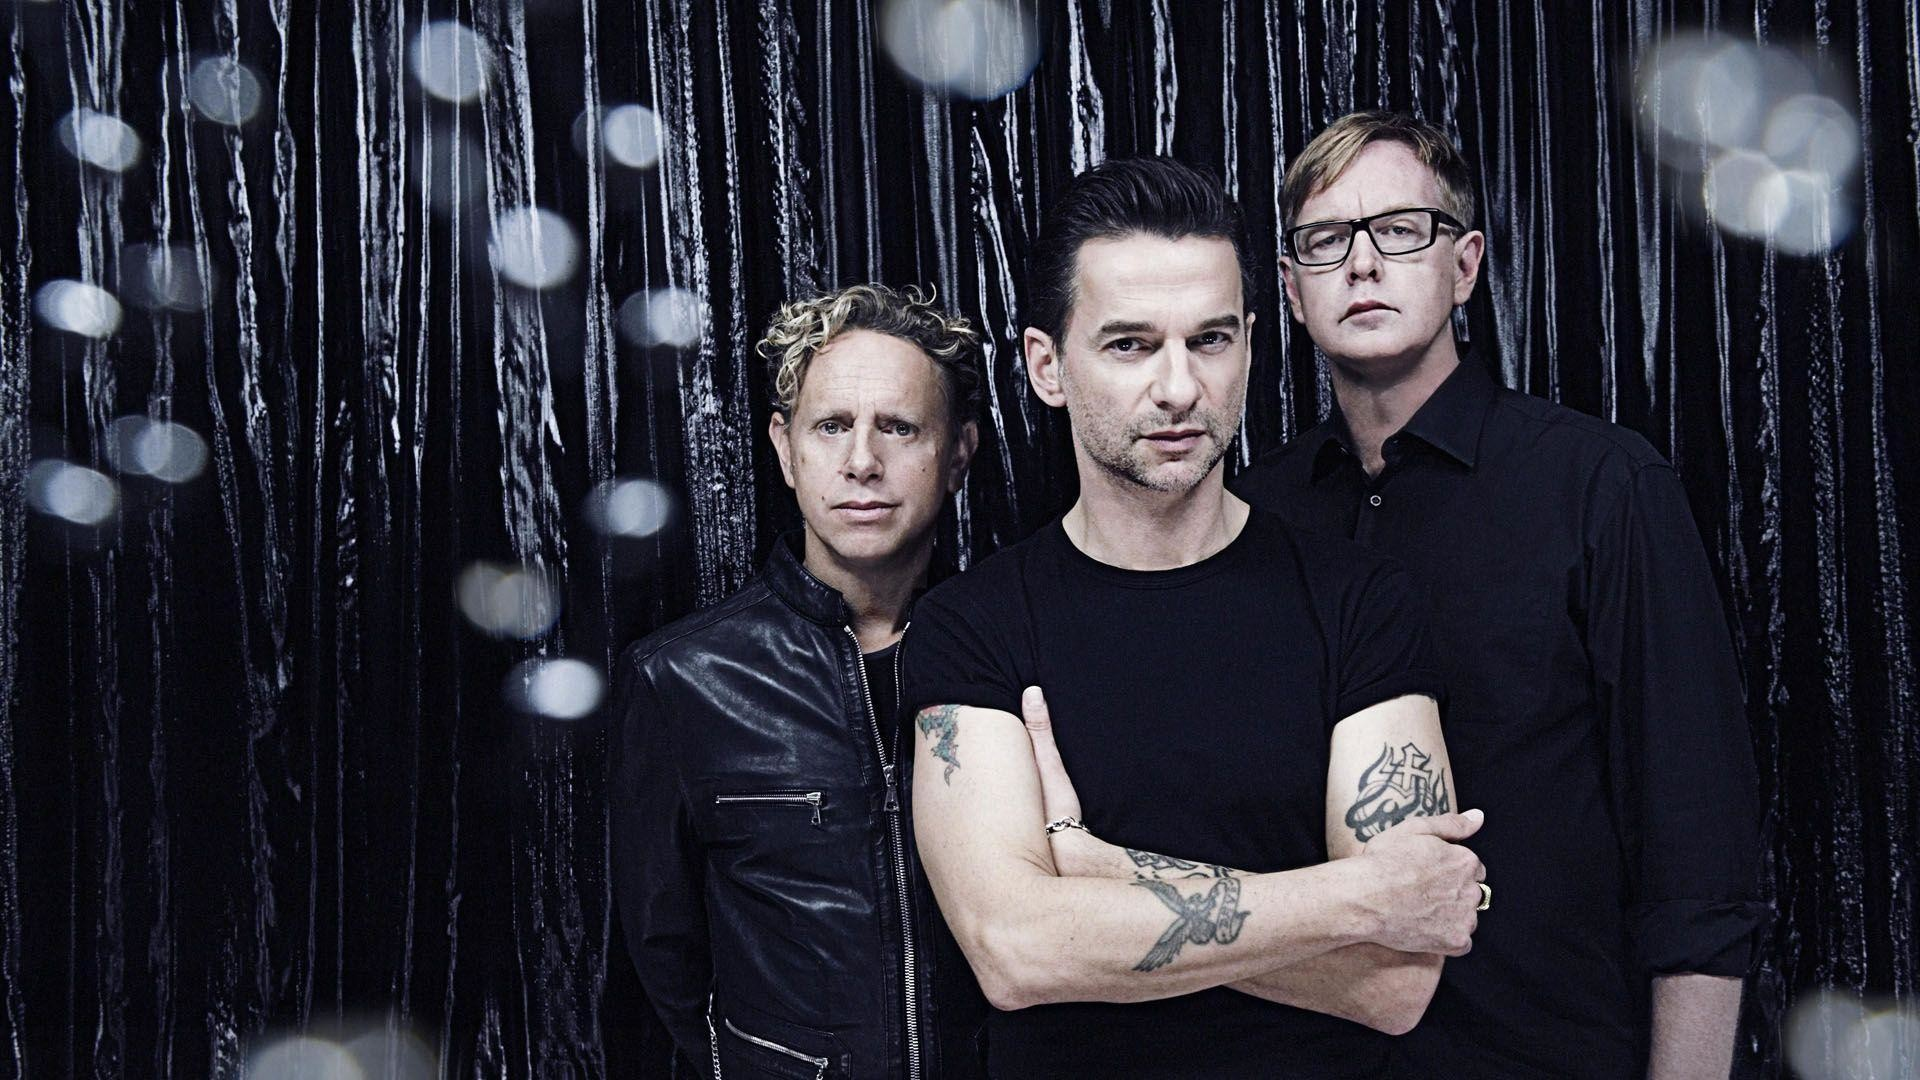 1920x1080 17 Depeche Mode HD Wallpapers | Backgrounds - Wallpaper Abyss